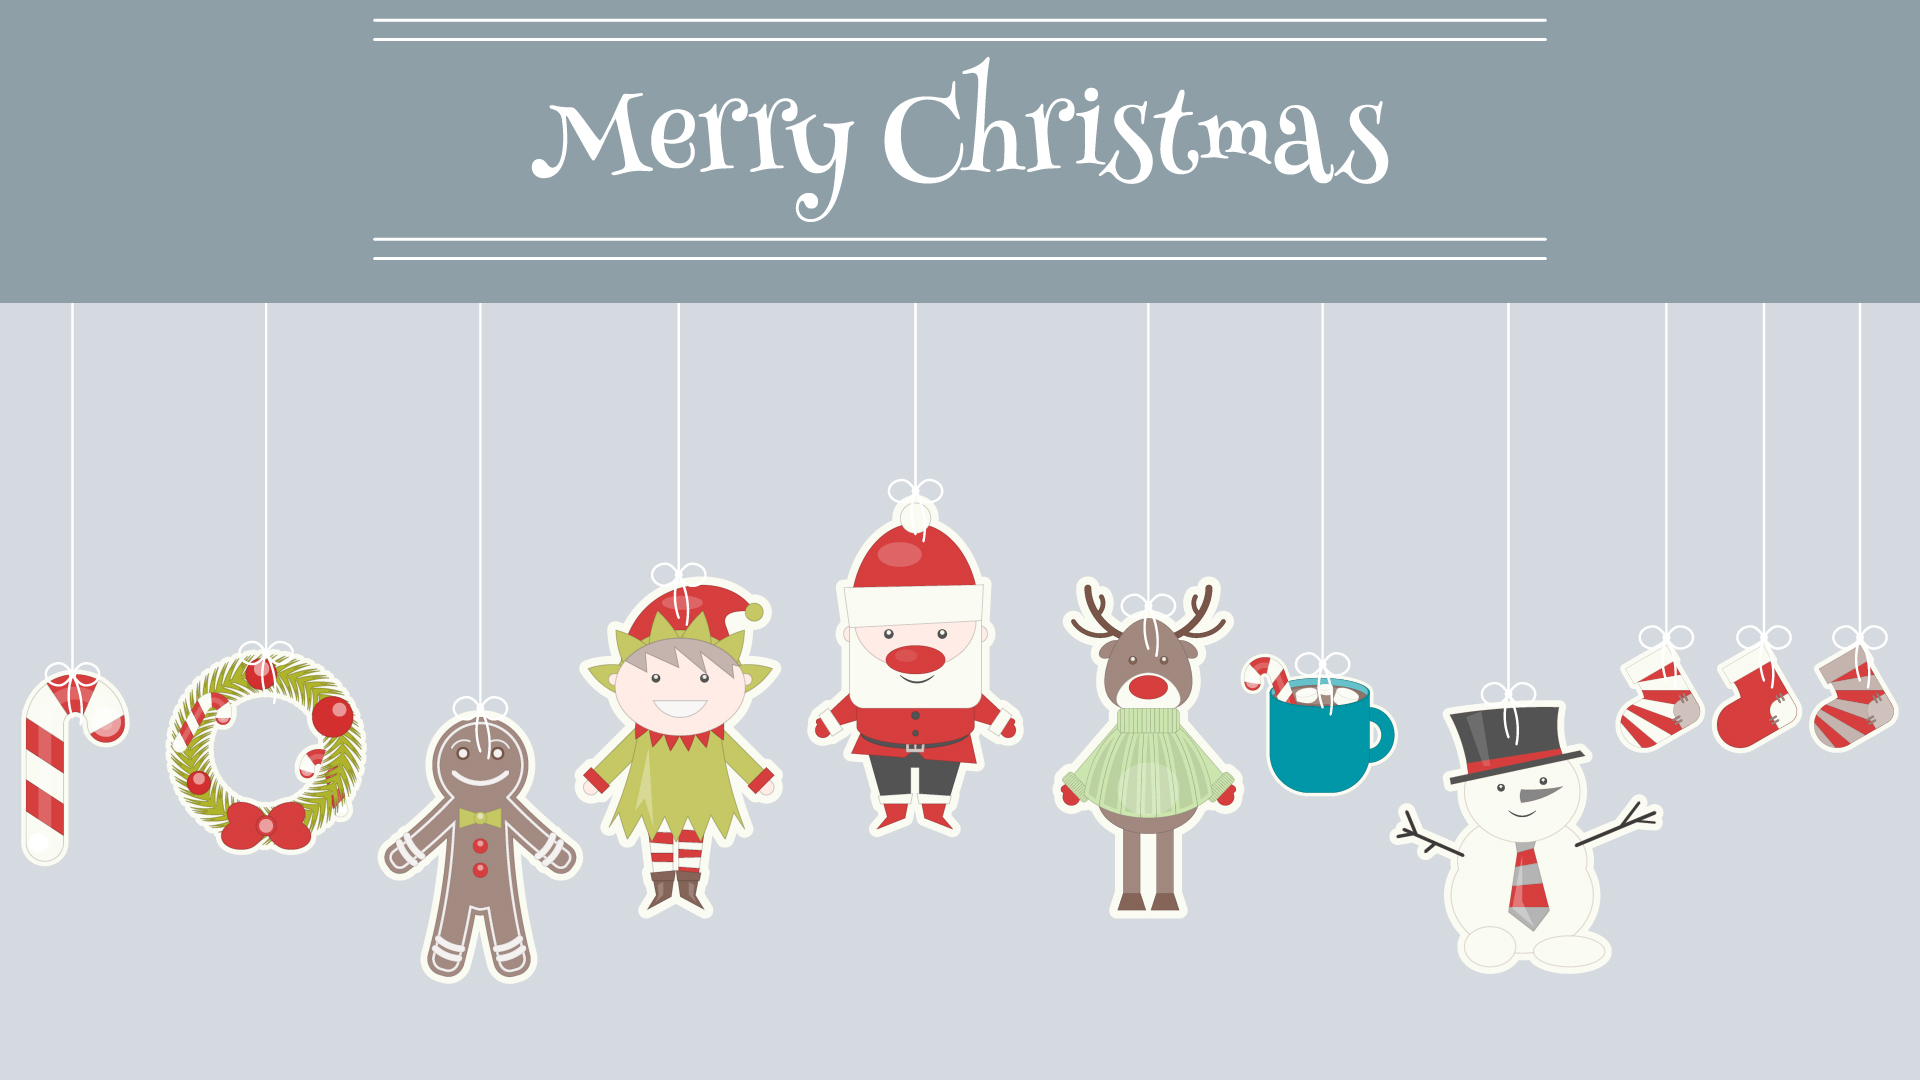 230710 1920x1080 merry christmas banner wide